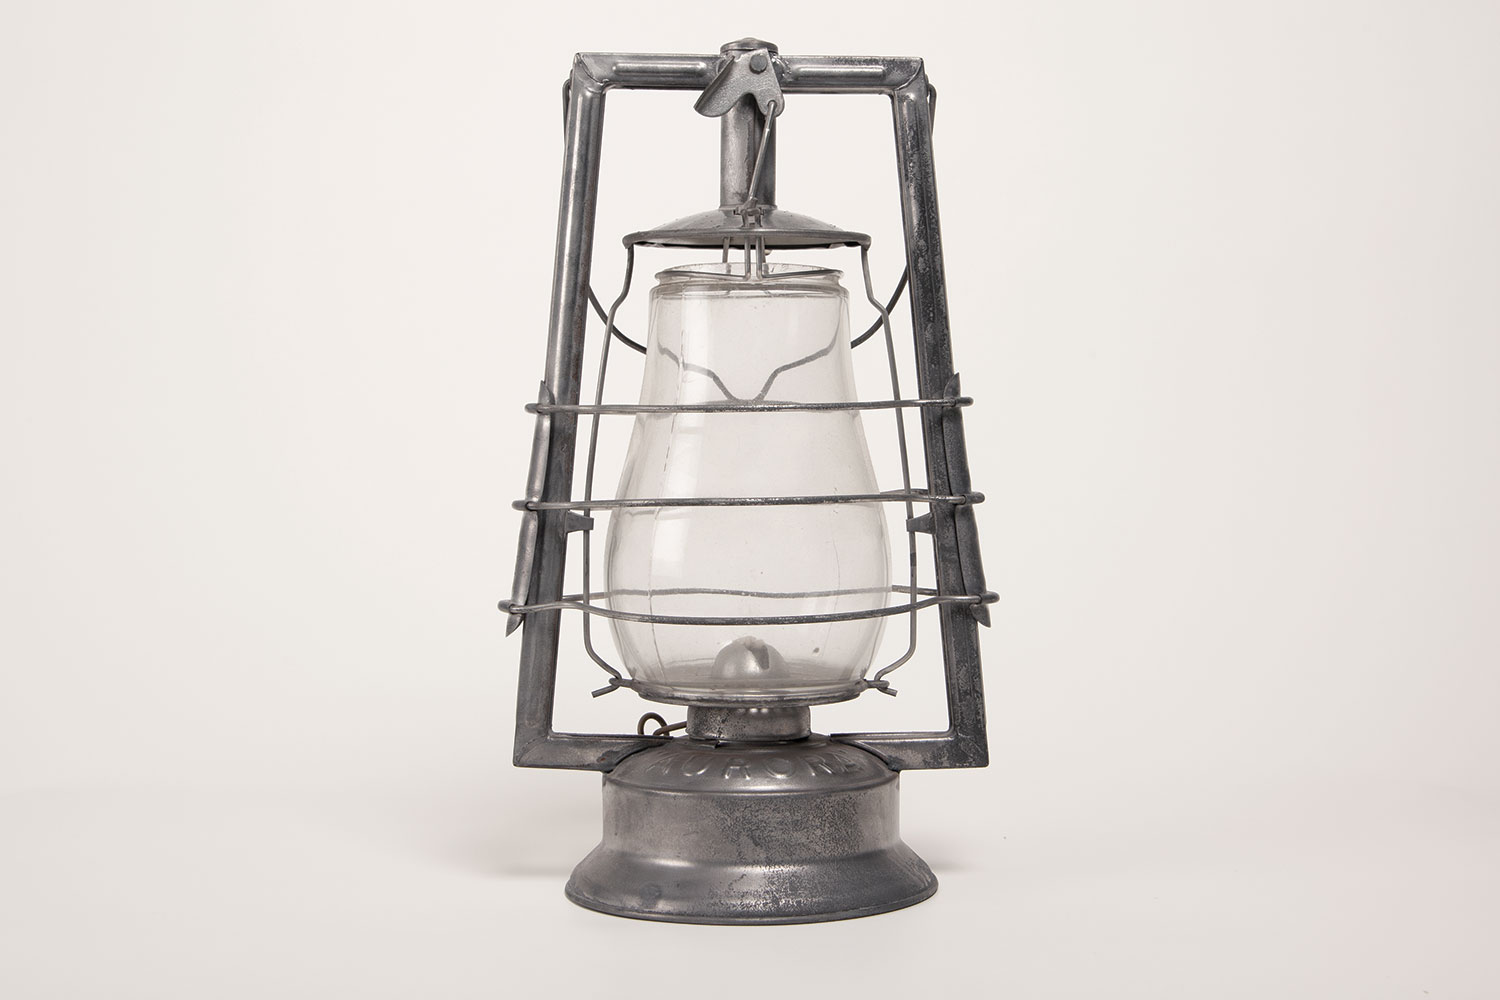 A hurricane lantern, from the 1940s.